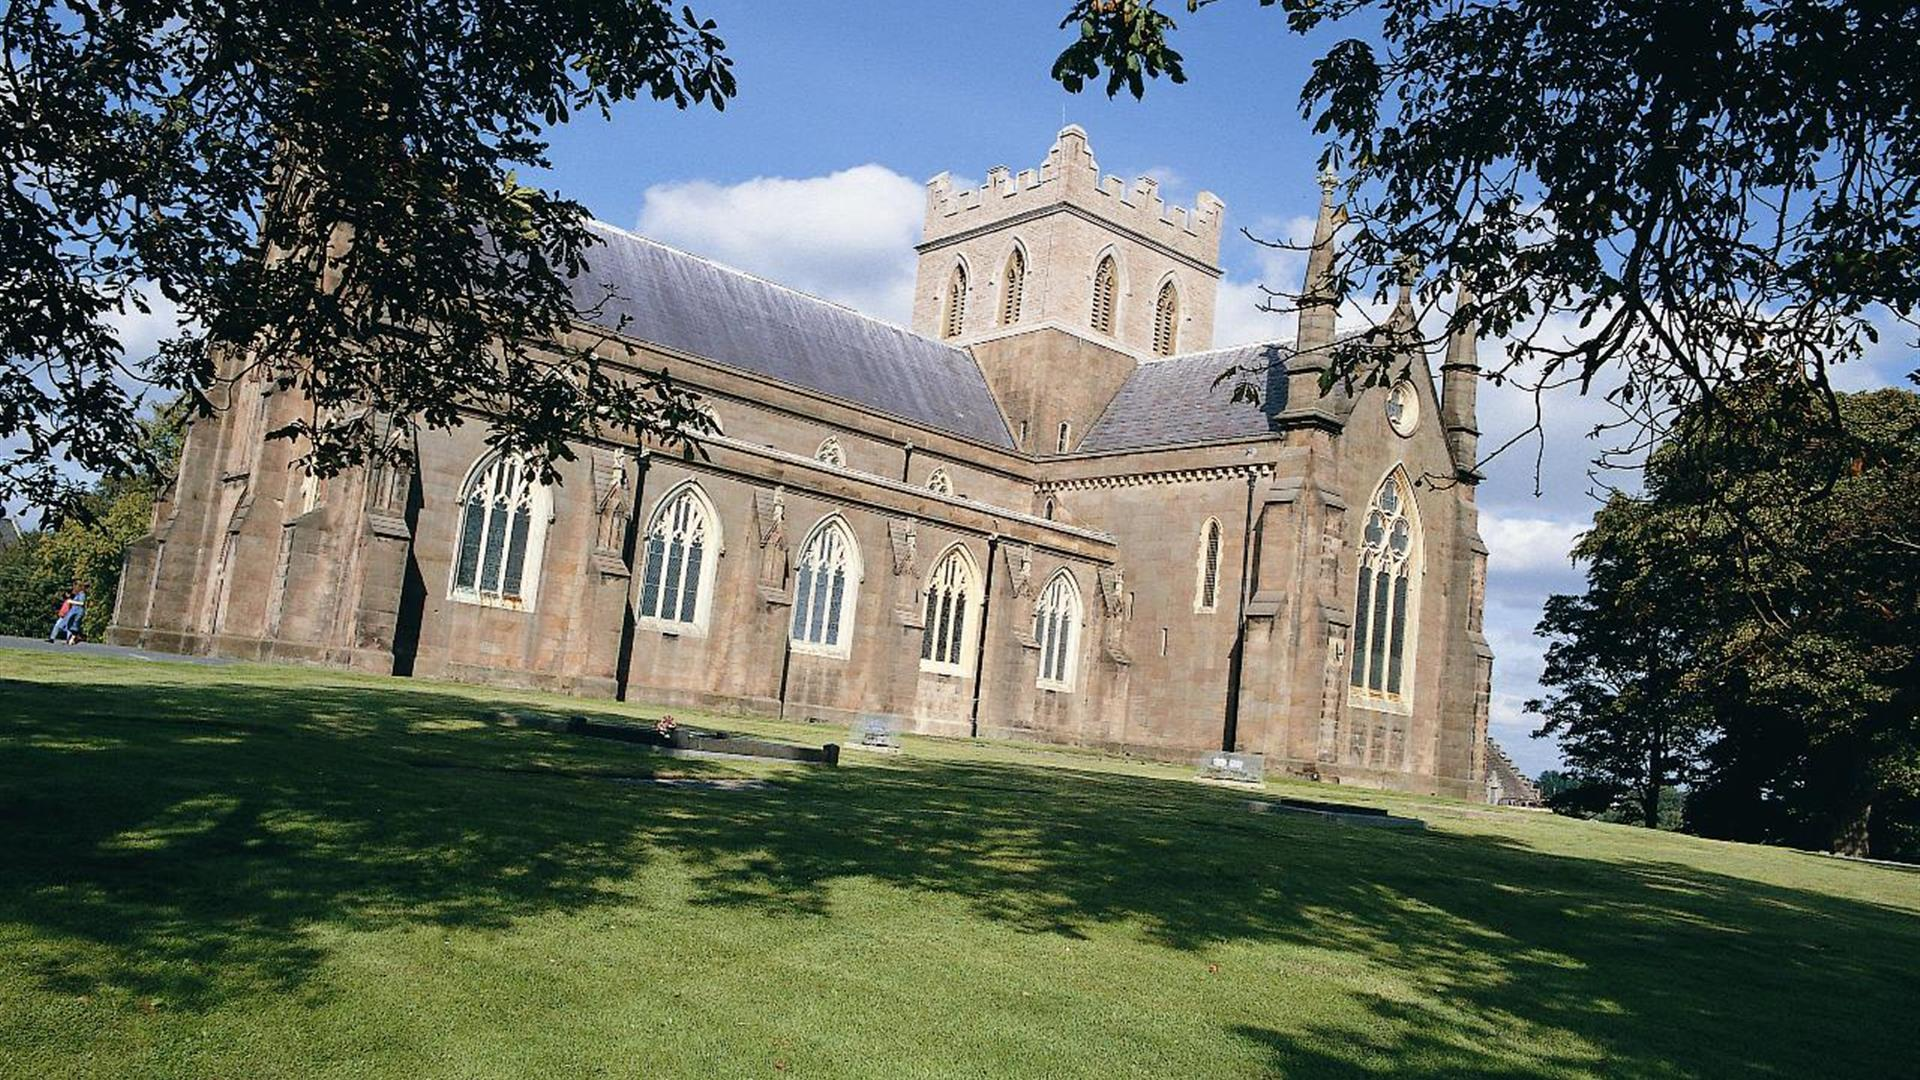 St Patrick's Church of Ireland Cathedral